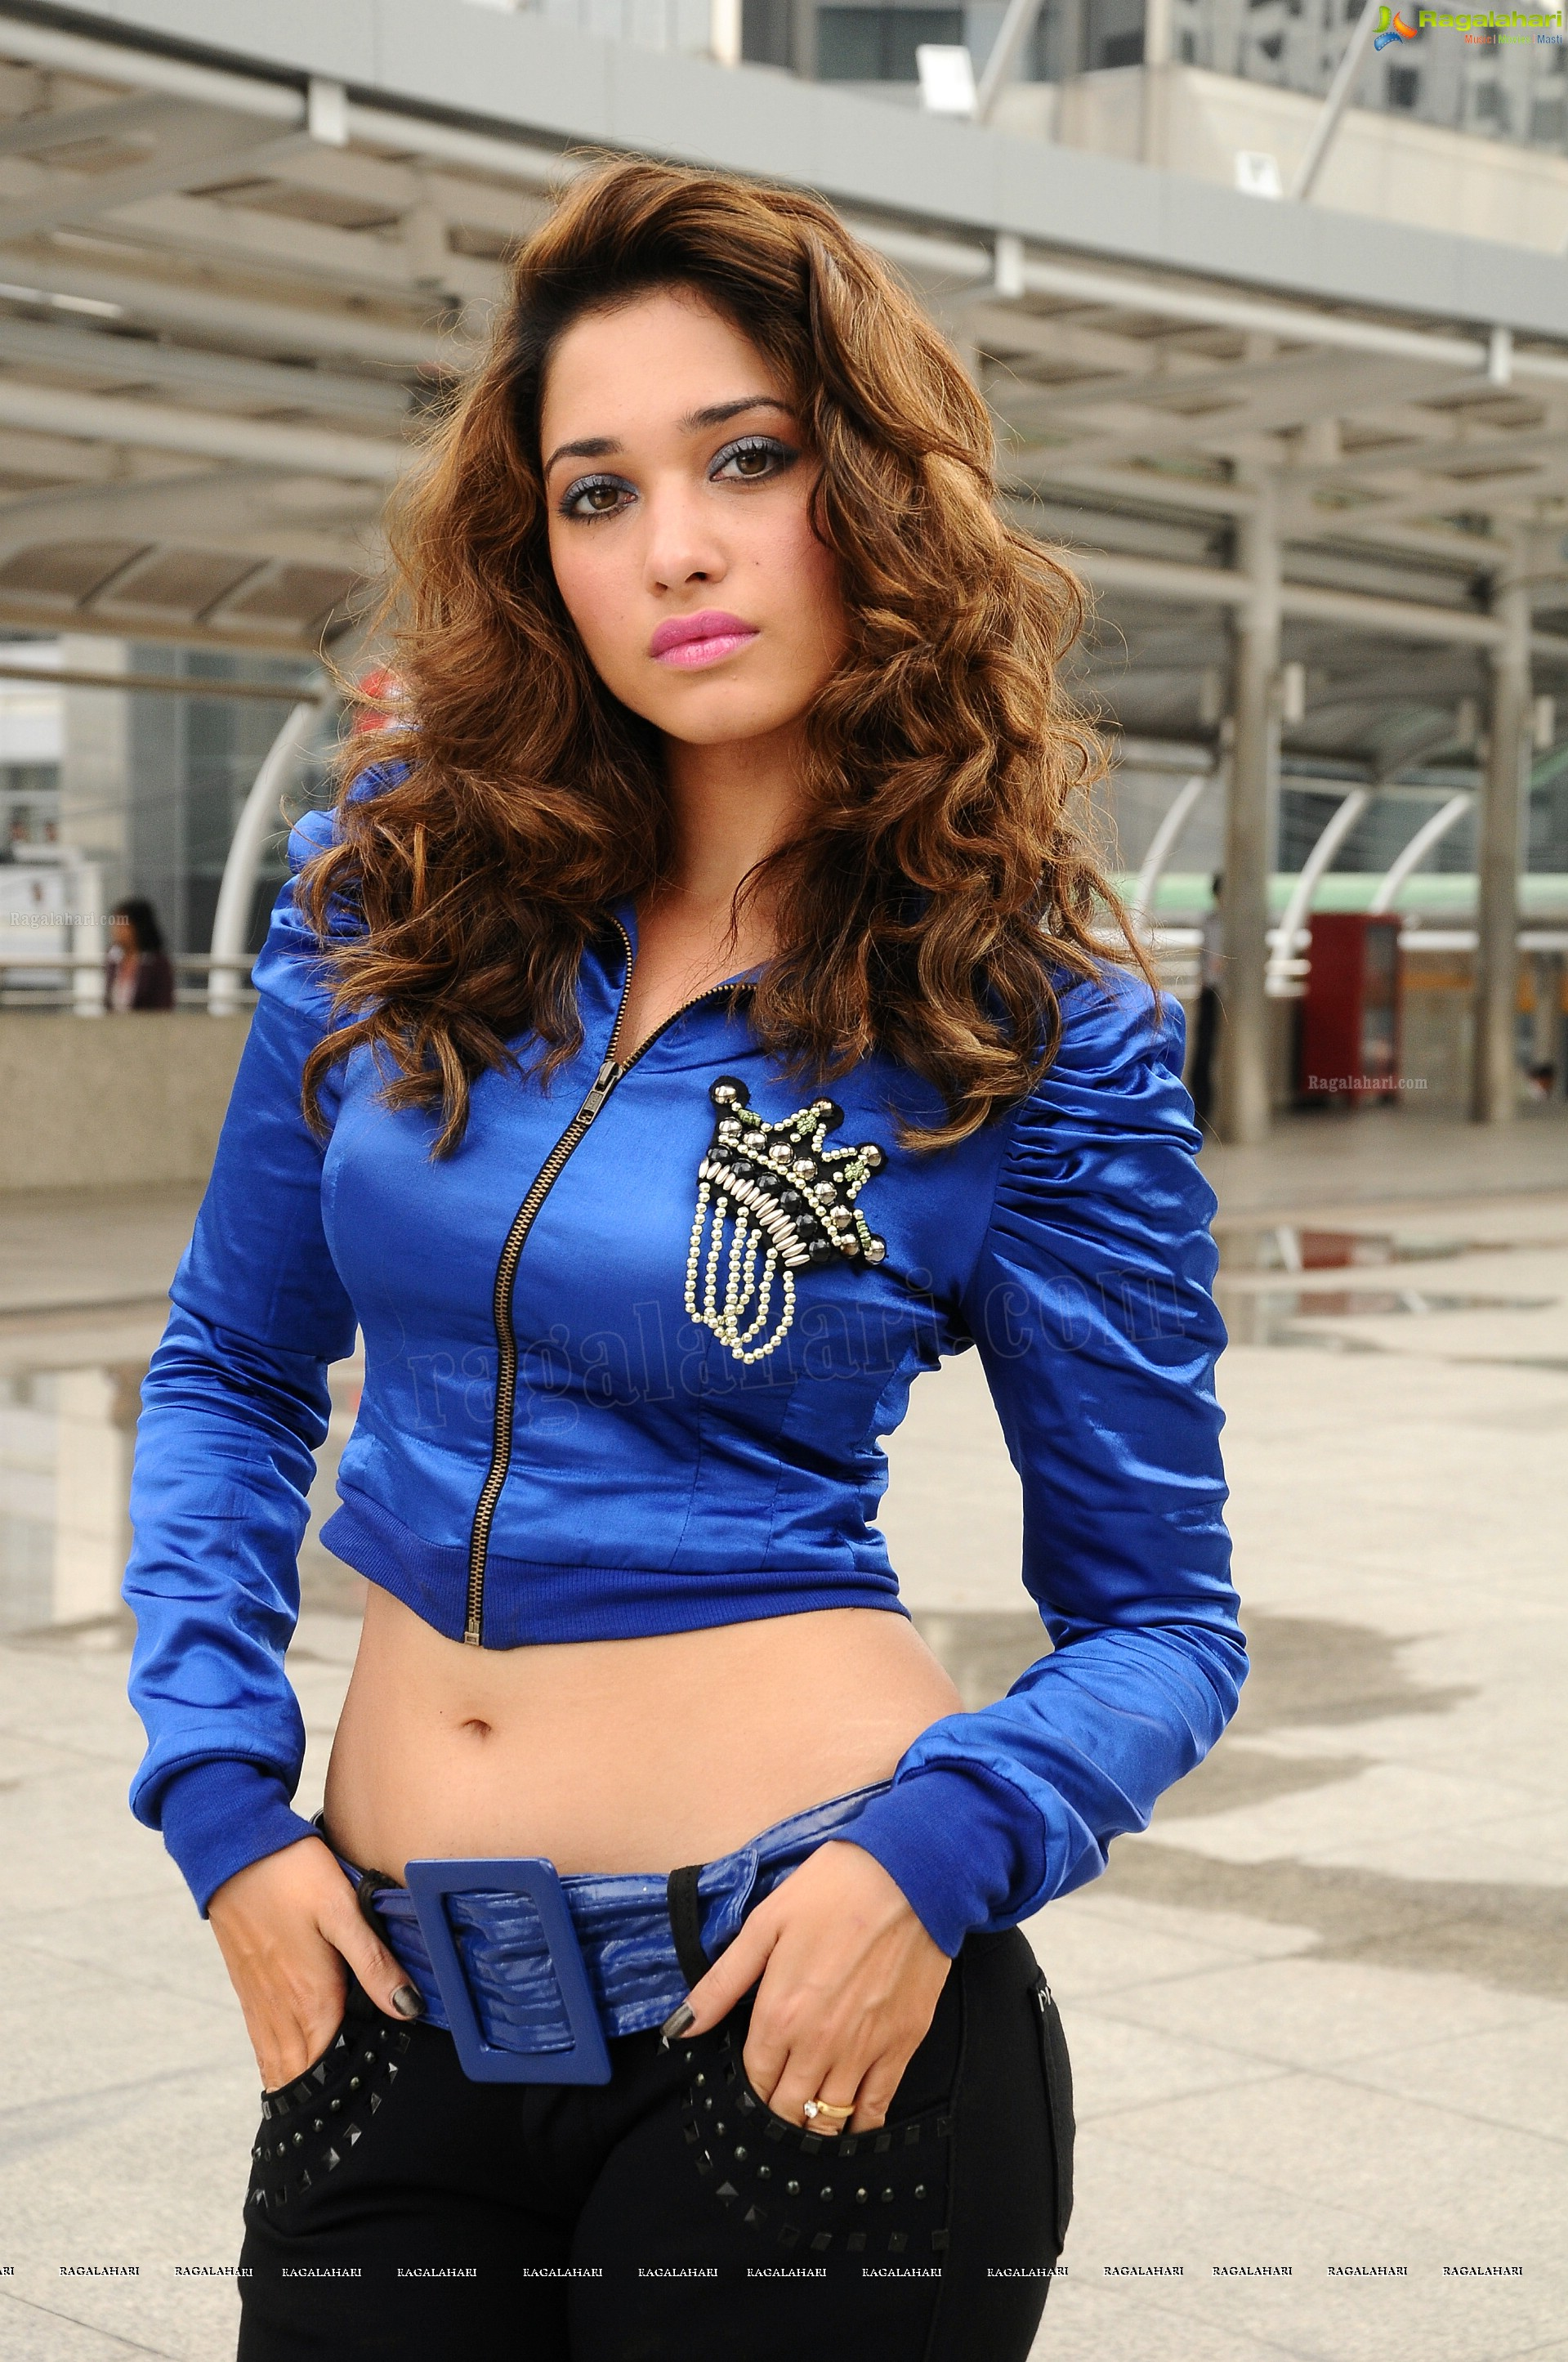 tamanna (hd) image 113 | telugu heroines stills,images, photos